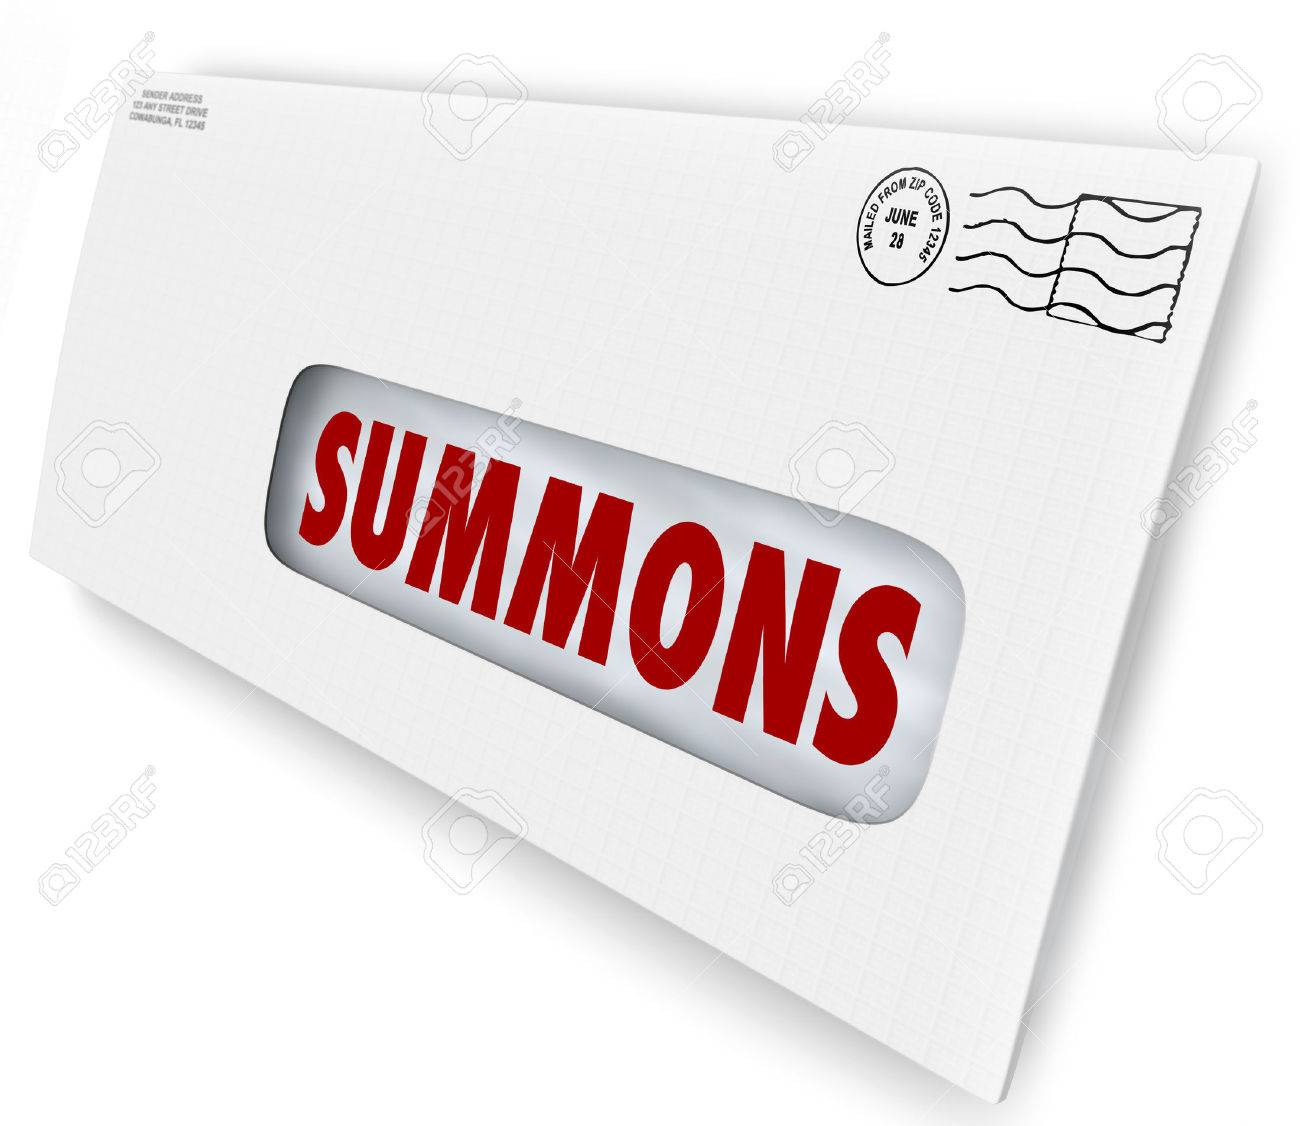 Summons Word On An Envelope Or Letter Being Served To Offficially Notify  You Of An Obligation